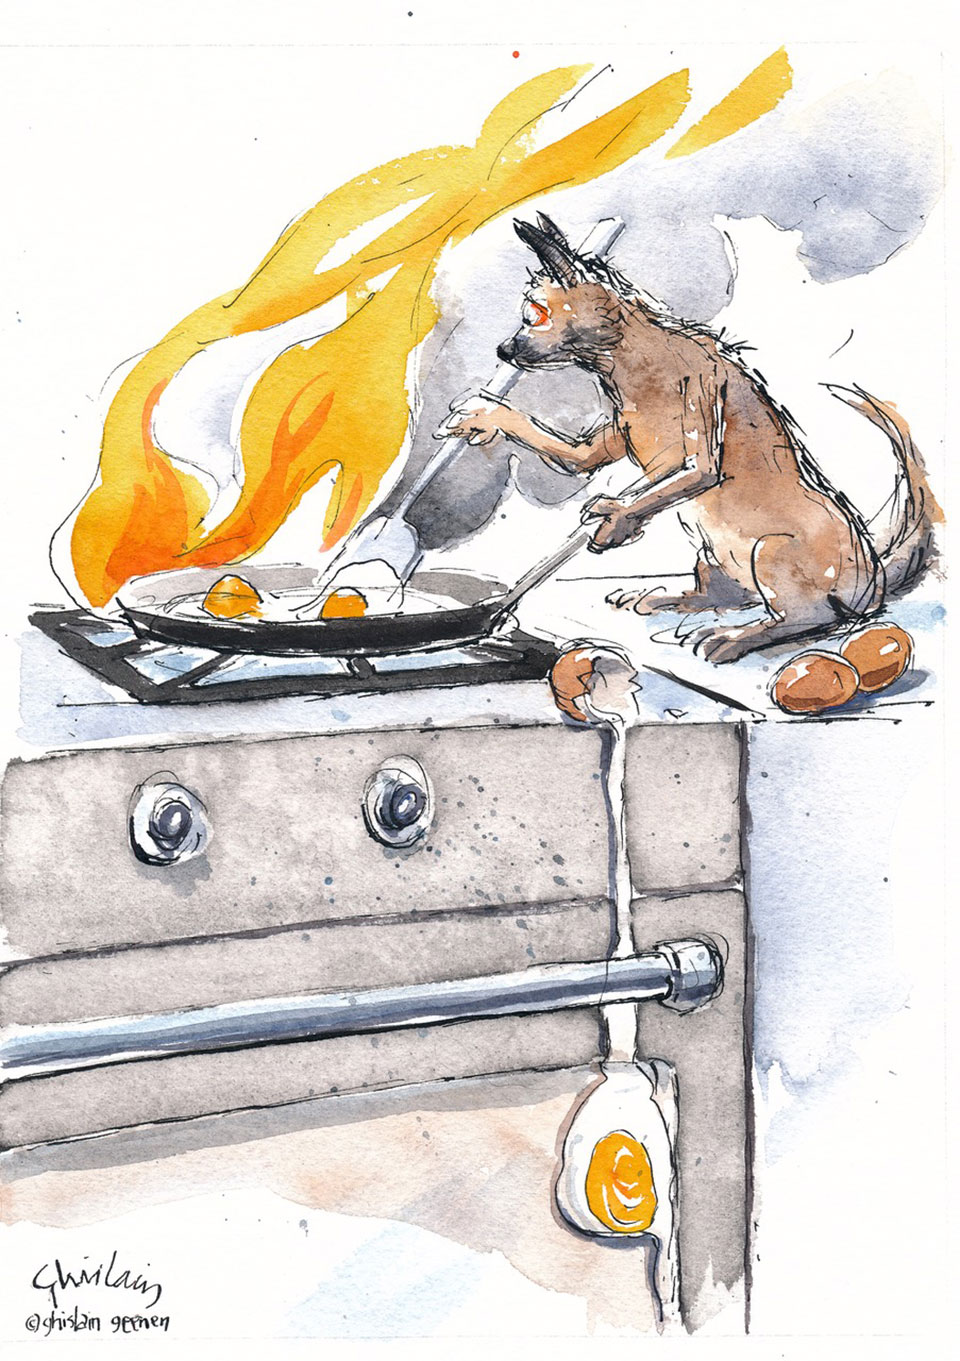 Ratty, the terrier, preparing breakfast.